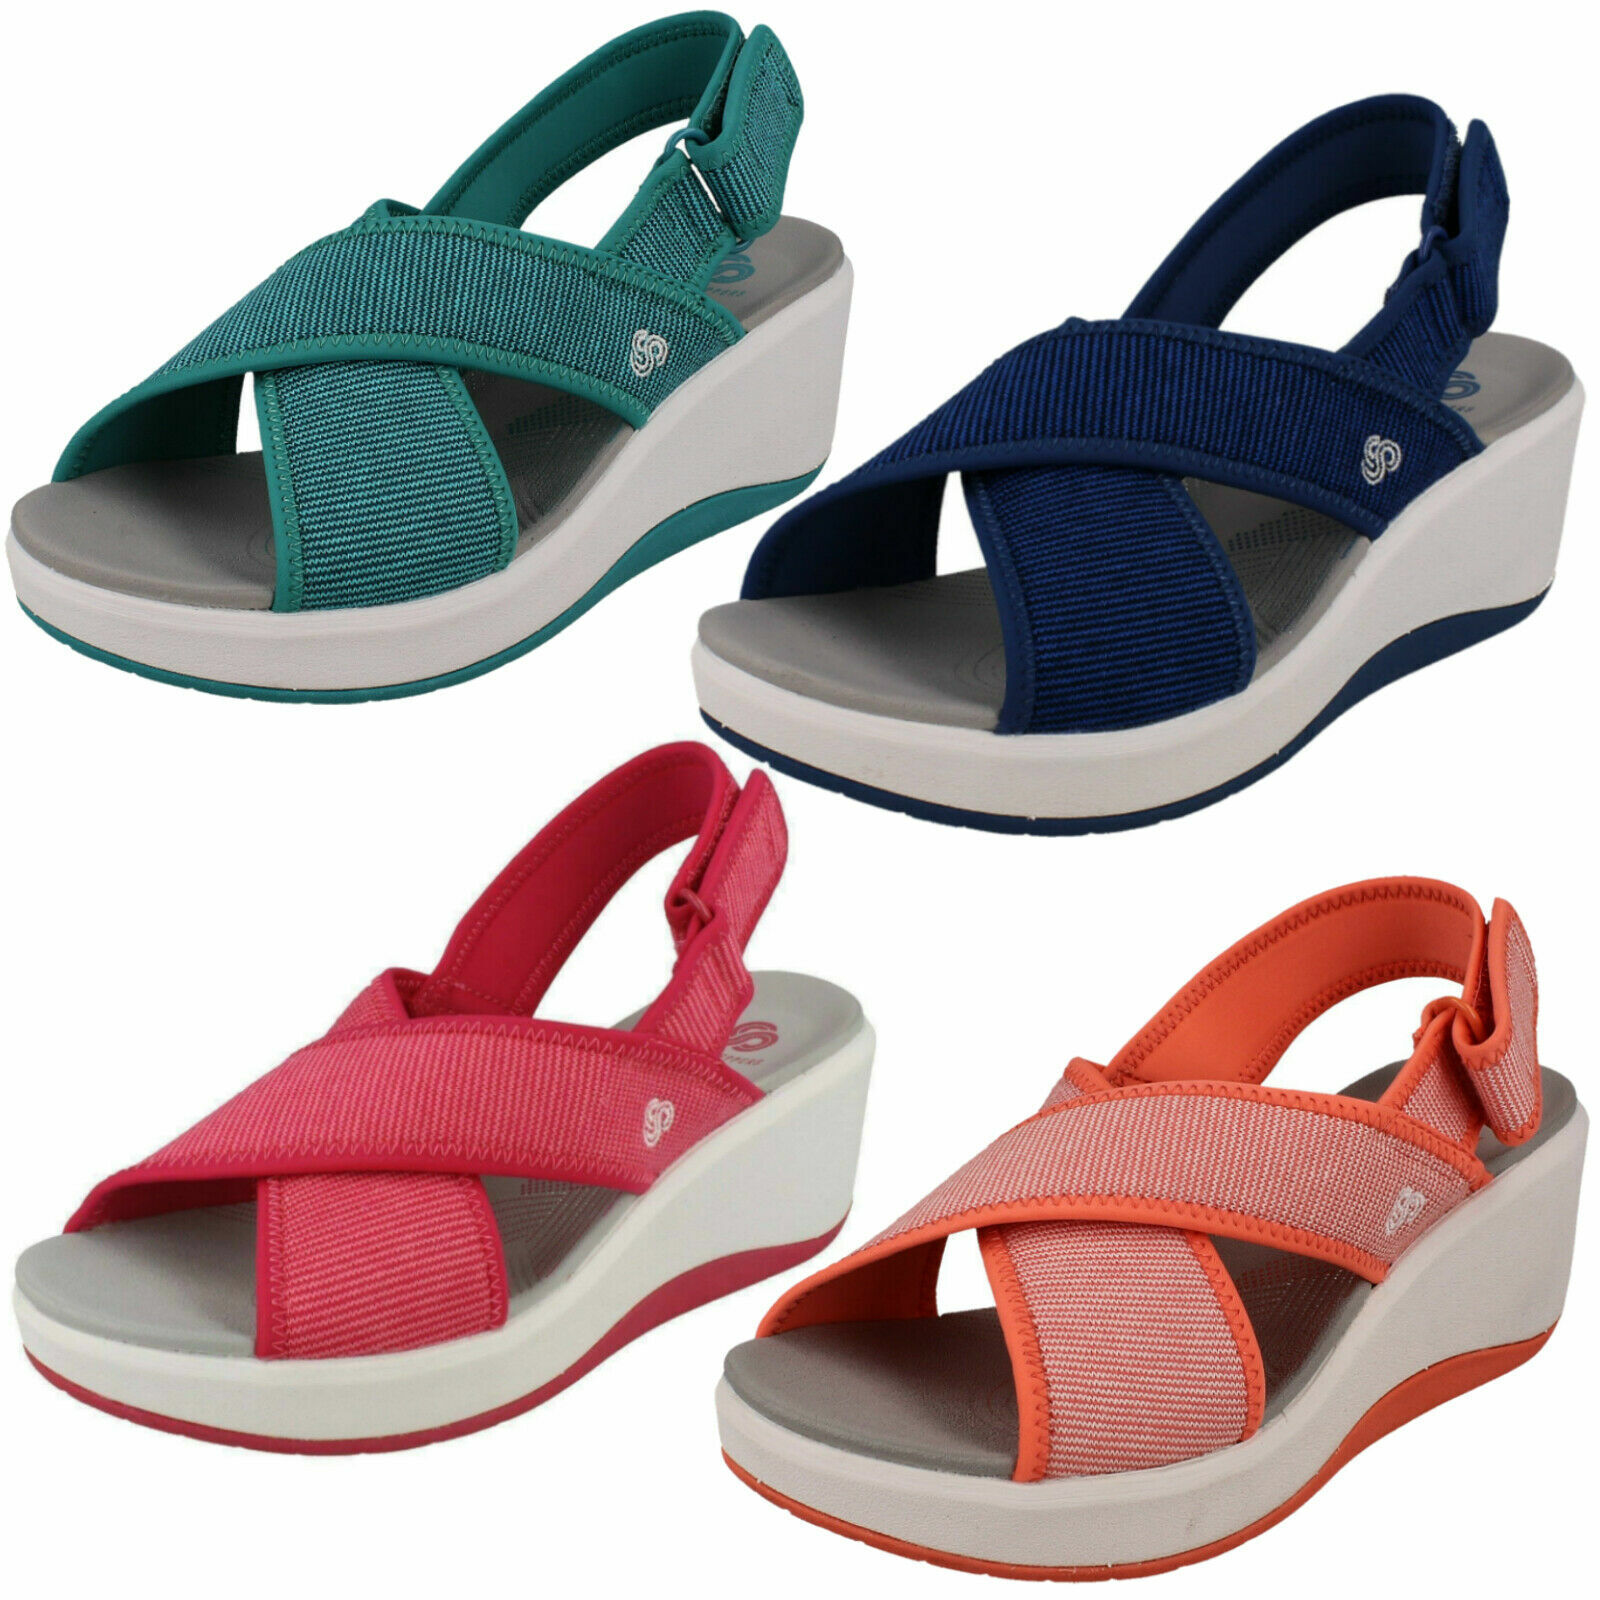 Womens Clarks 'step Cali Cove' cloudsteppers casual wedge sandals-wide